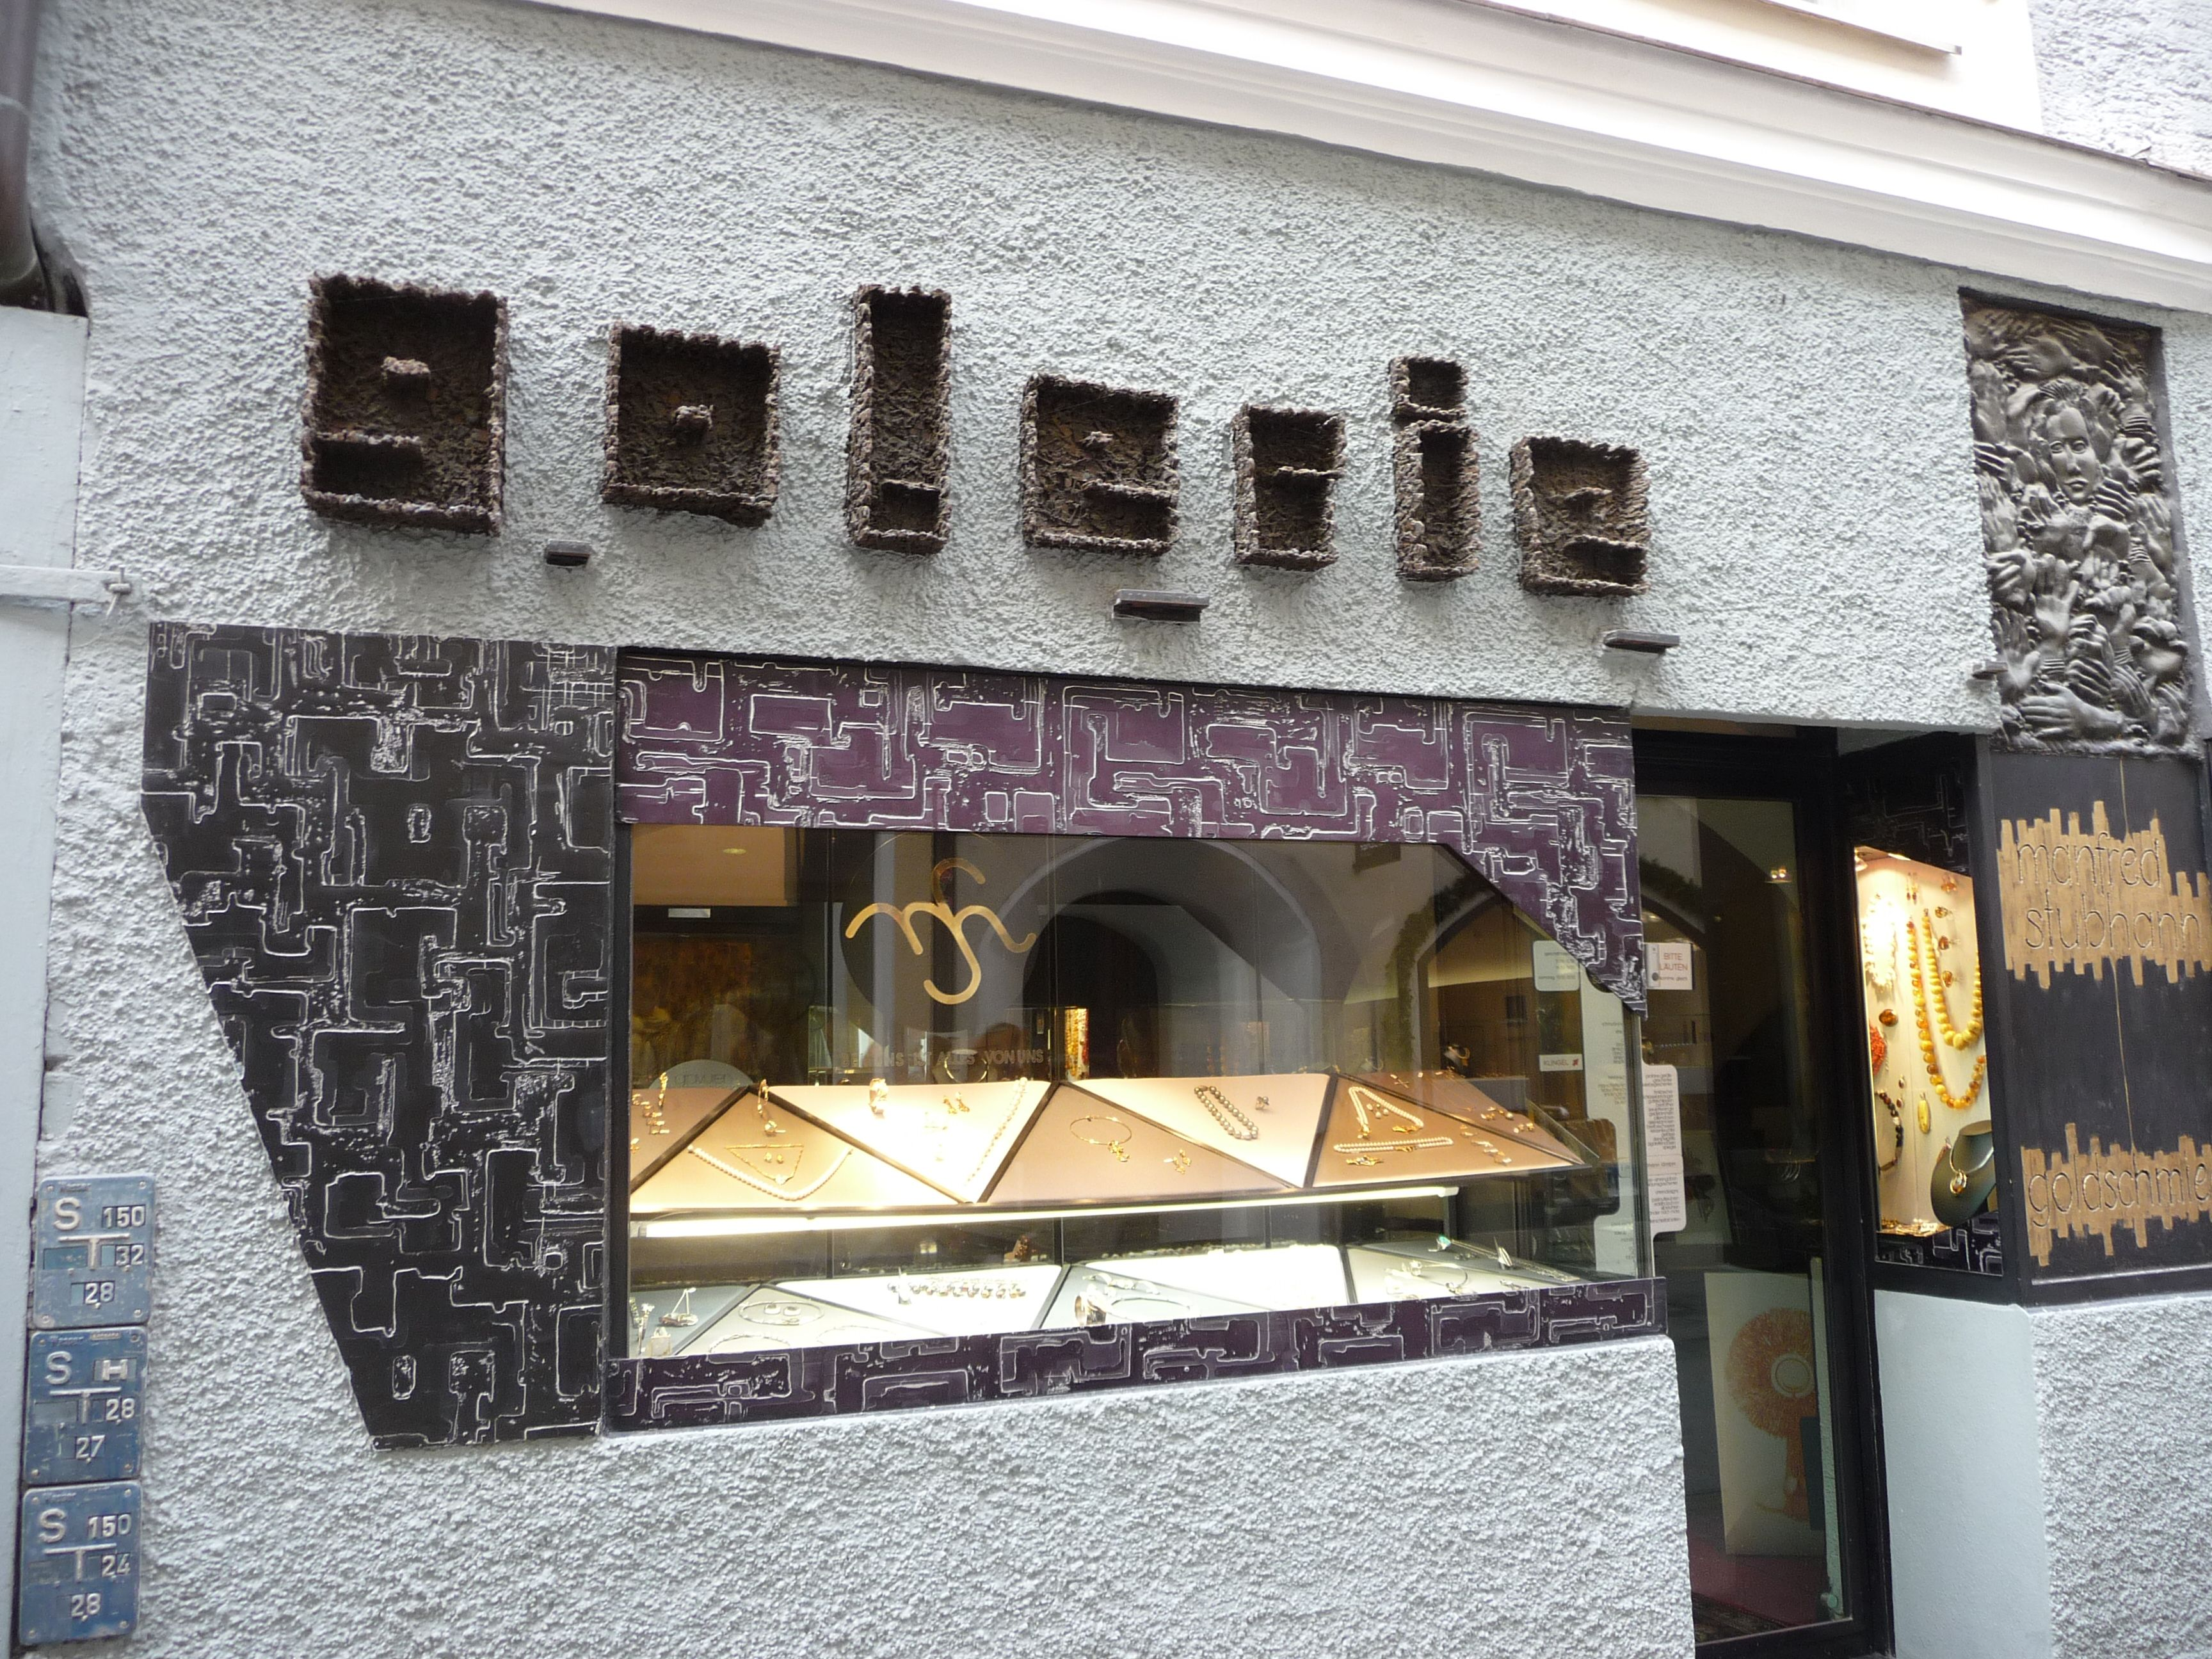 glorious textured 'galerie' sign